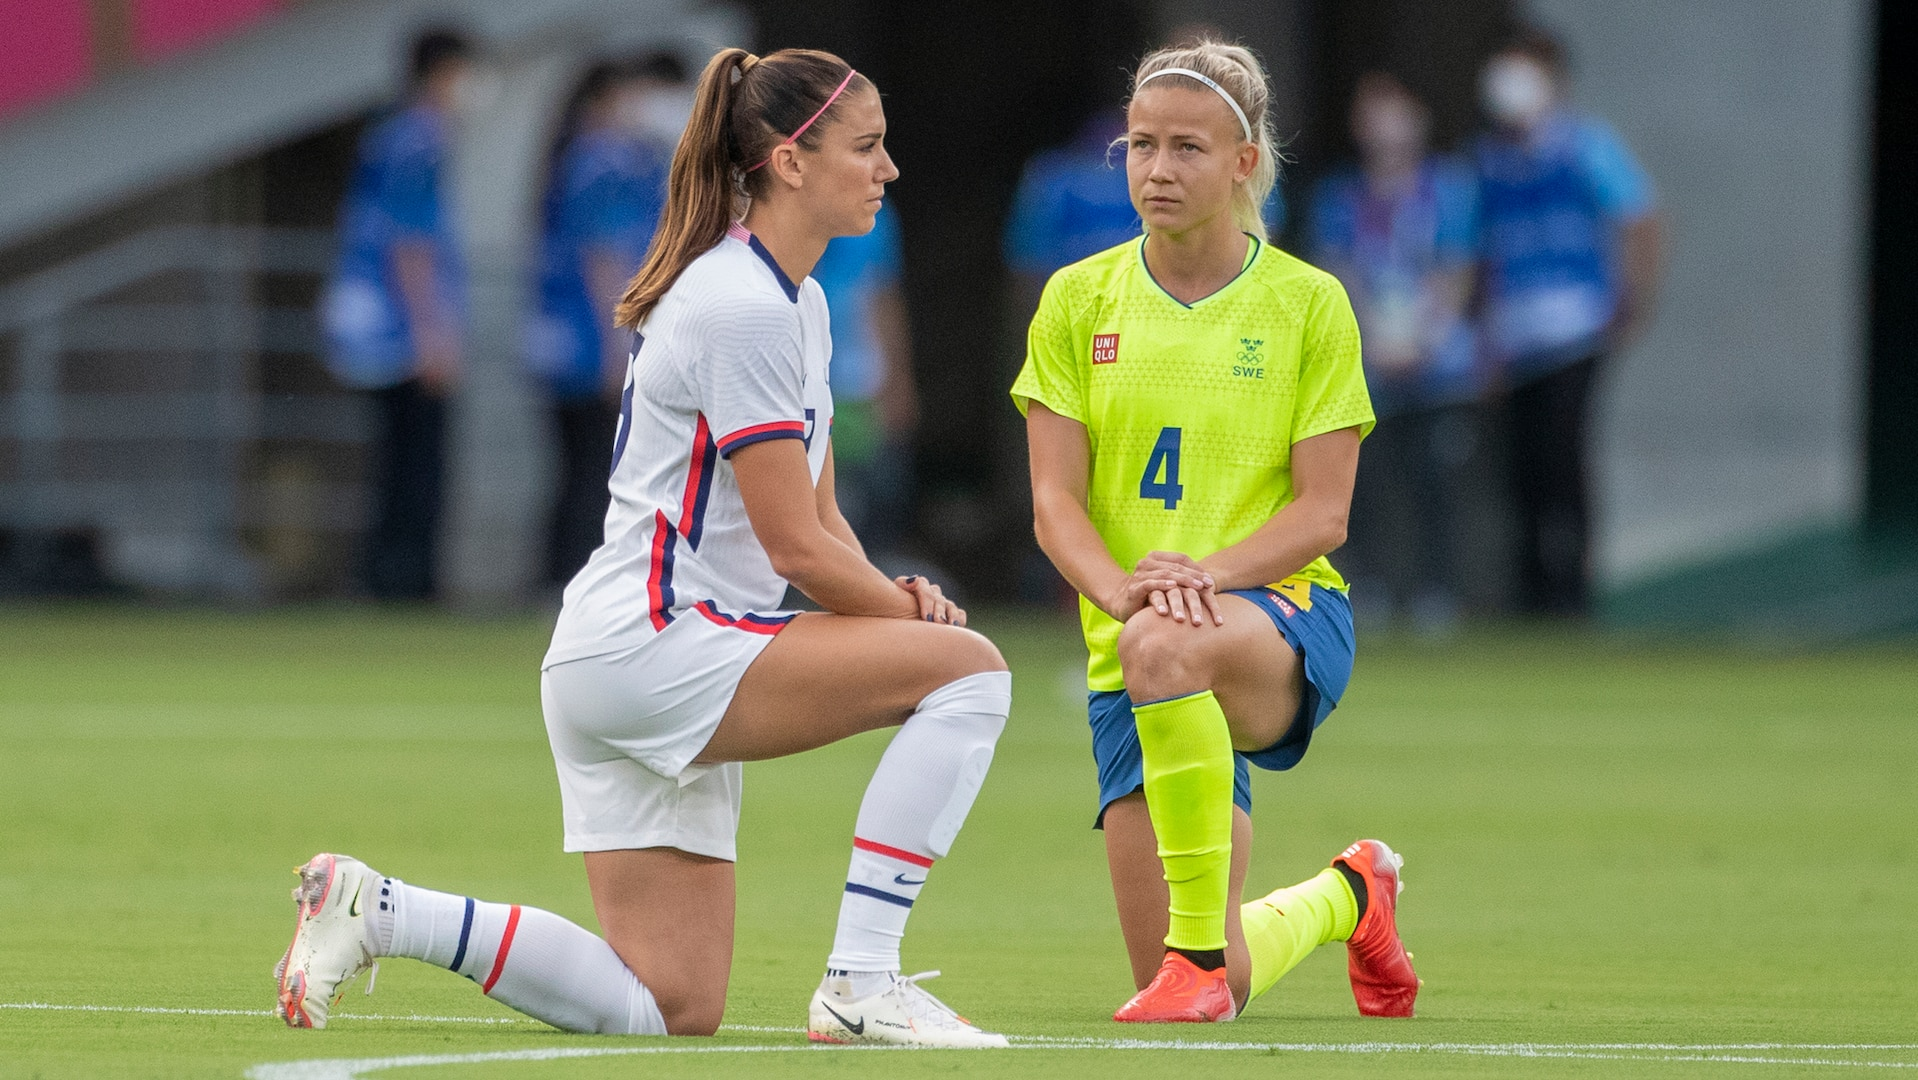 Alex Morgan. #13 of the United States and Hanna Glas #4 of Sweden take a knee before the start of the USA V Sweden group G soccer game at Tokyo Stadium during the Tokyo 2020 Olympics